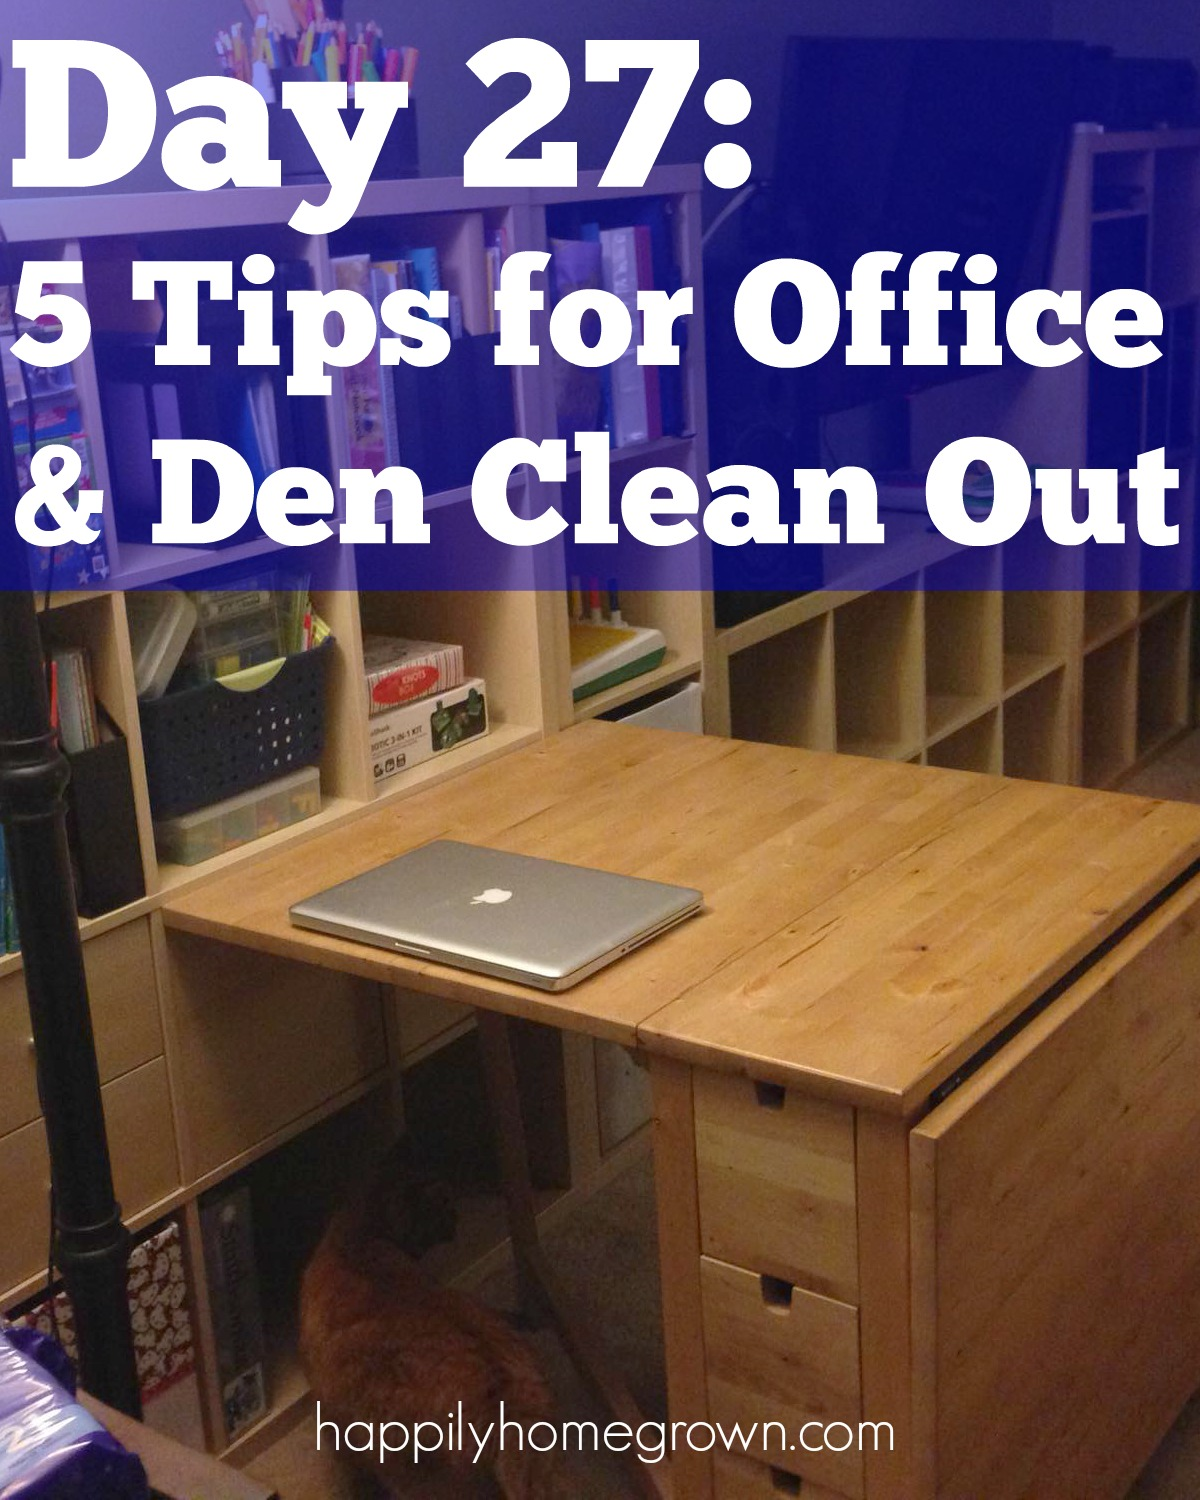 Now that we took care of the paper clutter, its time to look at your office space as a whole. Here are 5 tips for your office & den clean out.